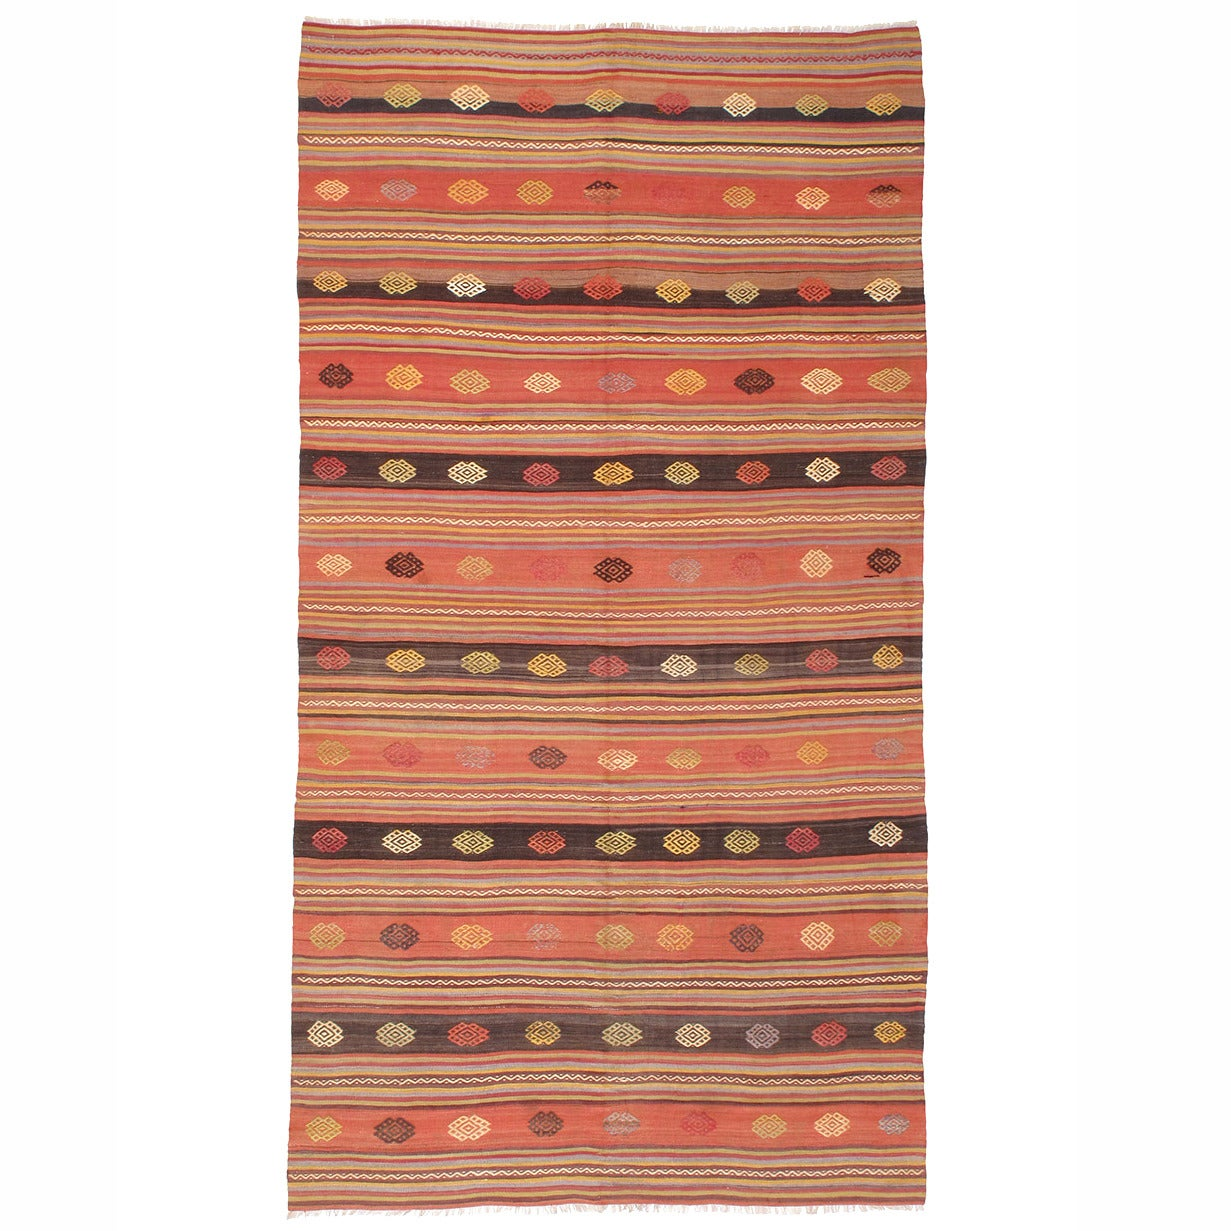 Kilim Rug with Decorated Bands